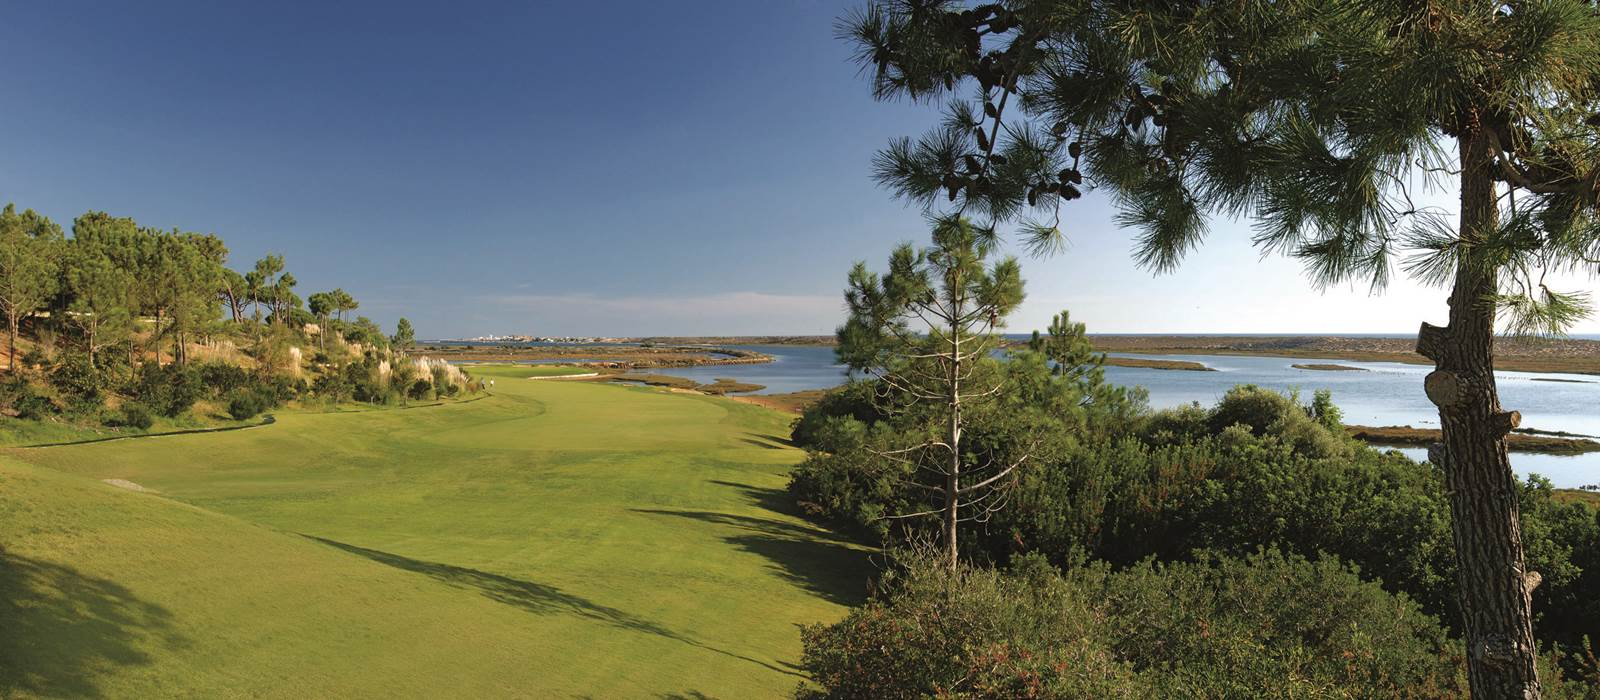 7th Hole at San Lorenzo Golf Course, Algarve